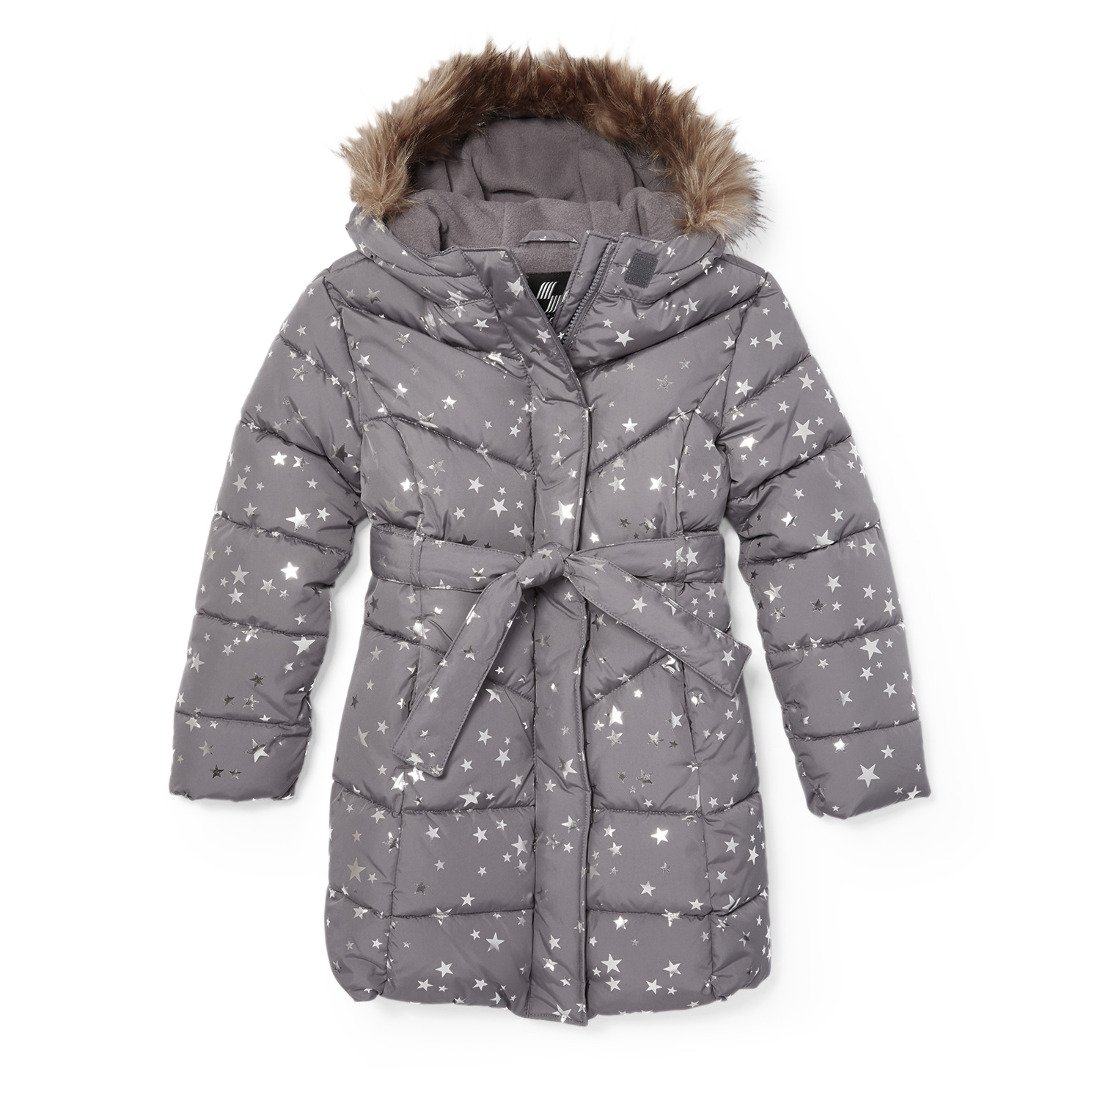 The Children's Place Girls Printed Long Puffer Jacket, Steamboat 86925, XXL(16)